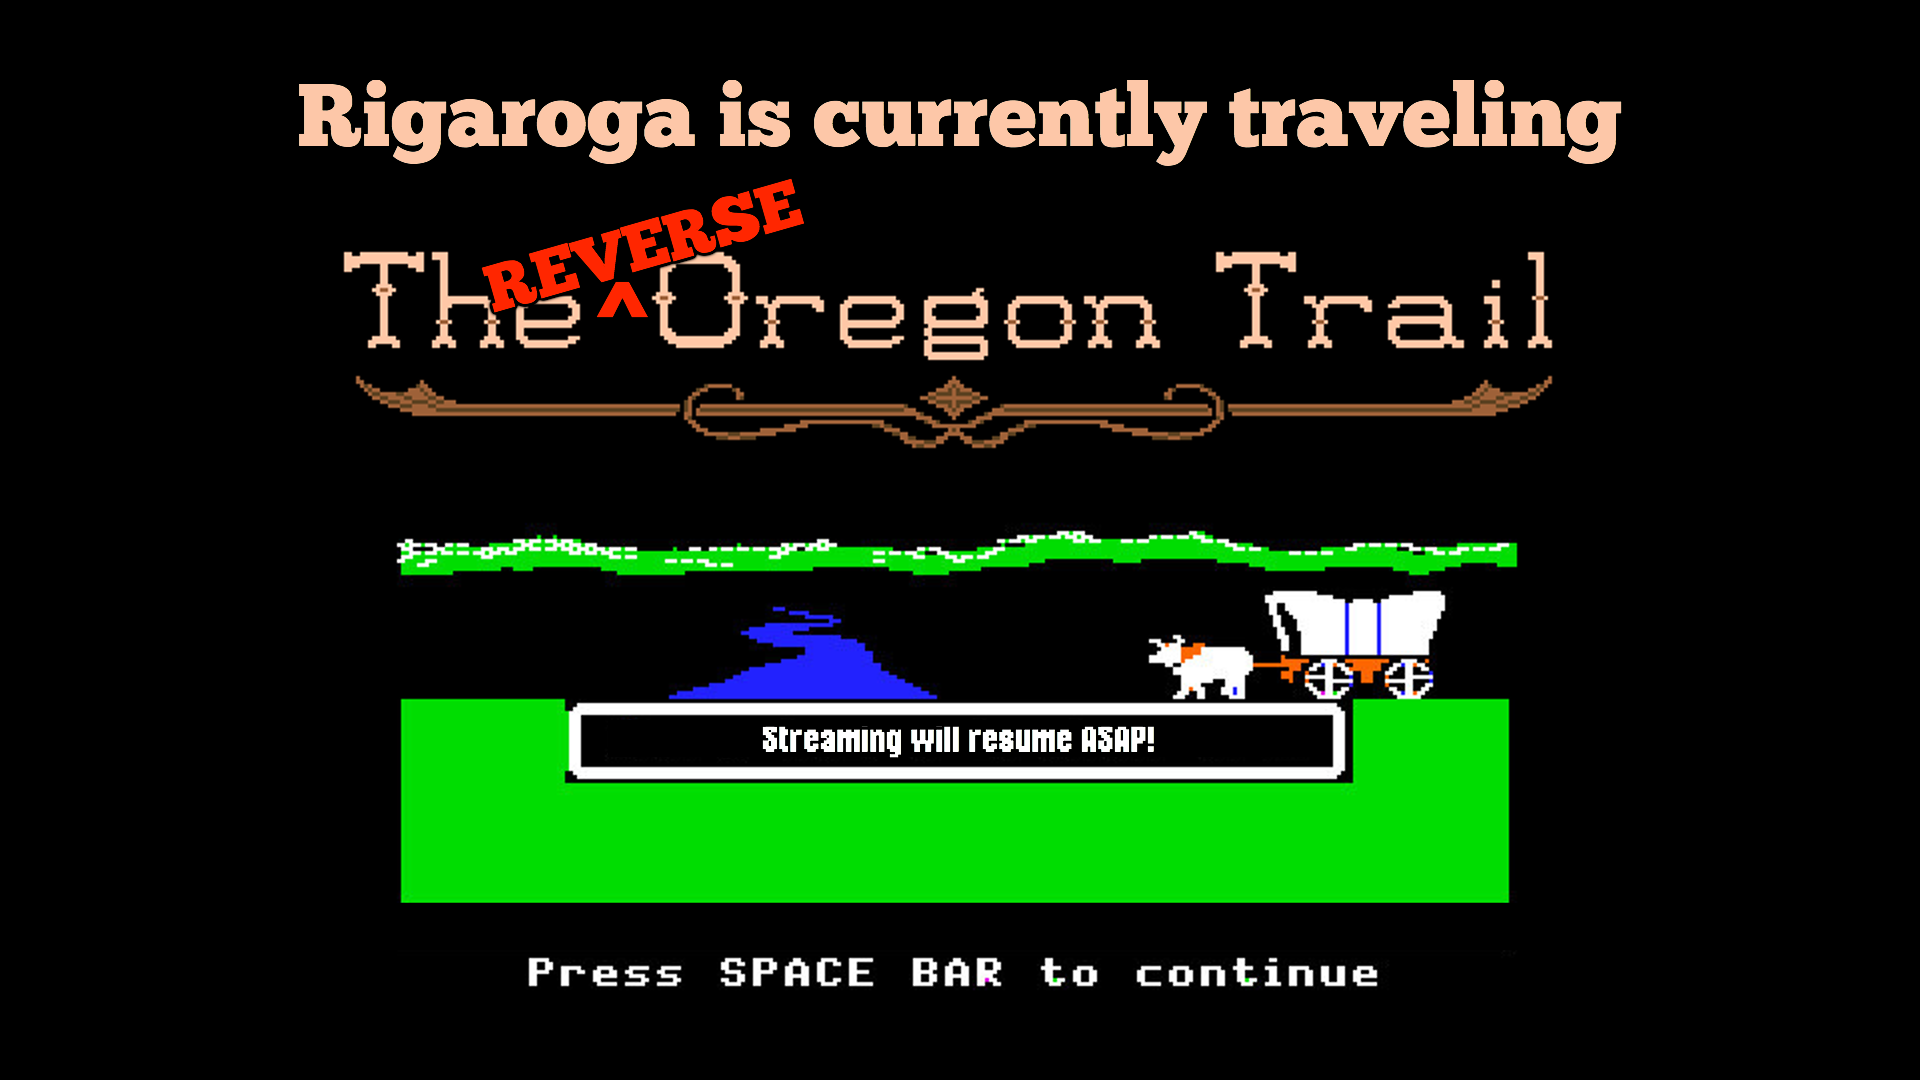 Rigaroga is currently traveling the reverse Oregon trail